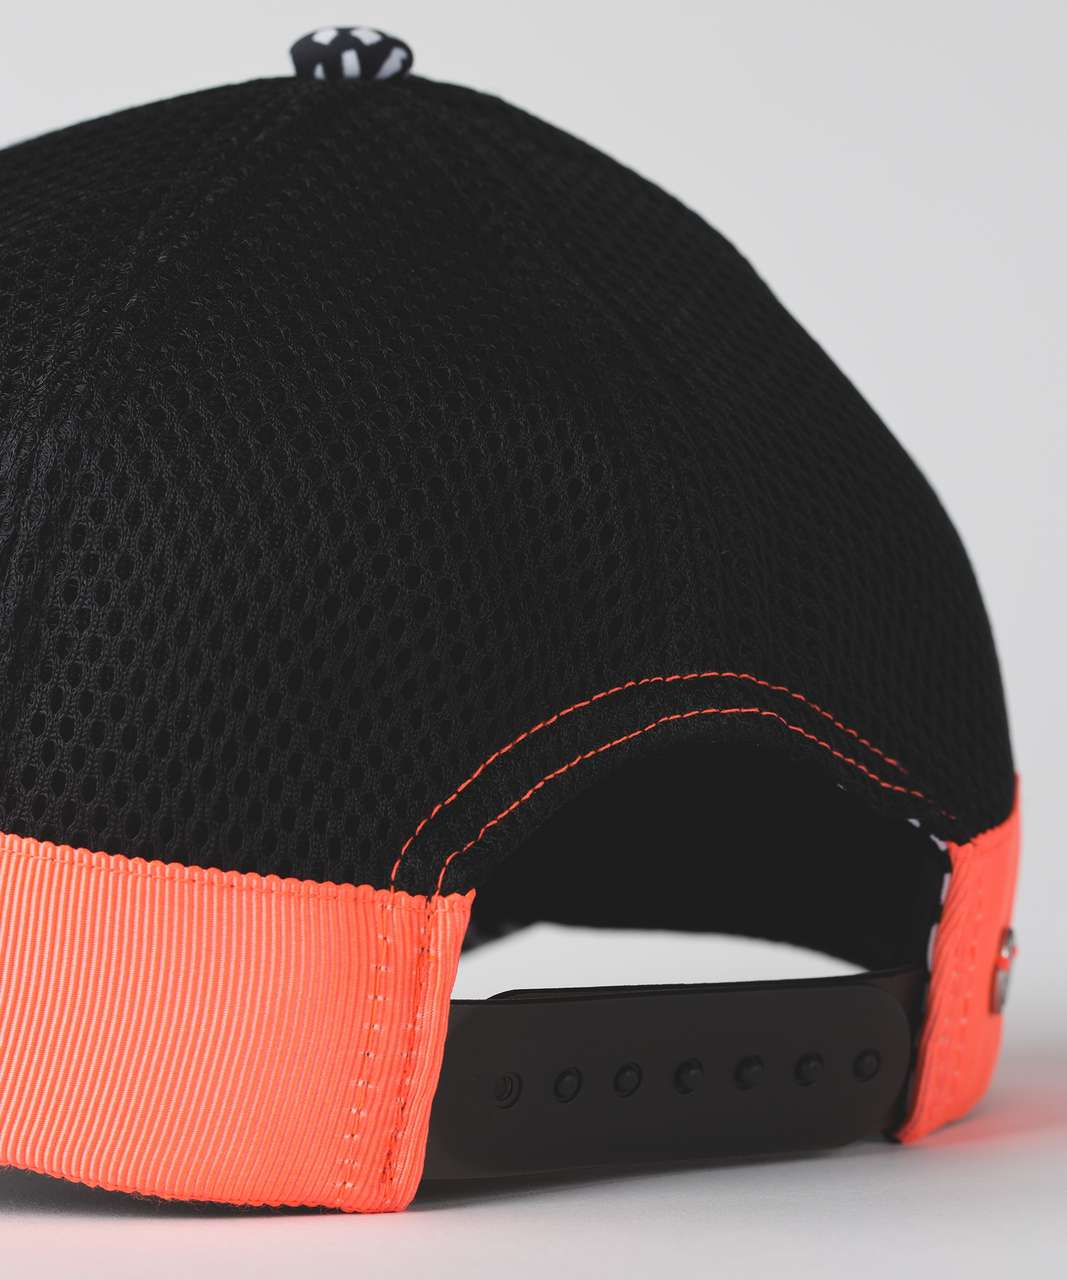 Lululemon Dash & Splash Cap - Black / Miss Mosaic Black